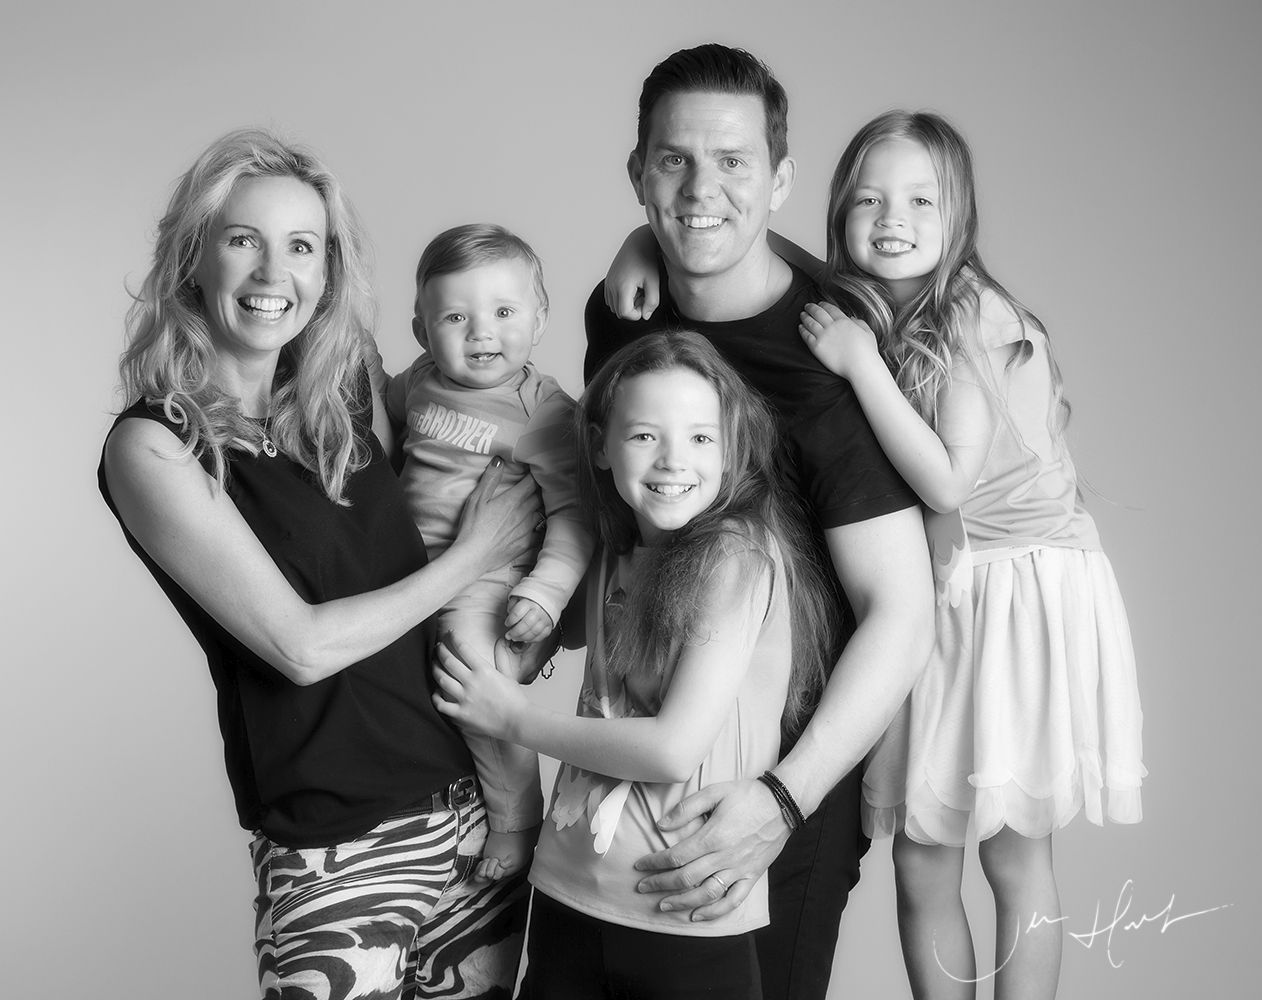 Family-Photography-Studio-Middlesbrough-Jen-Hart- 04June16_010-BW